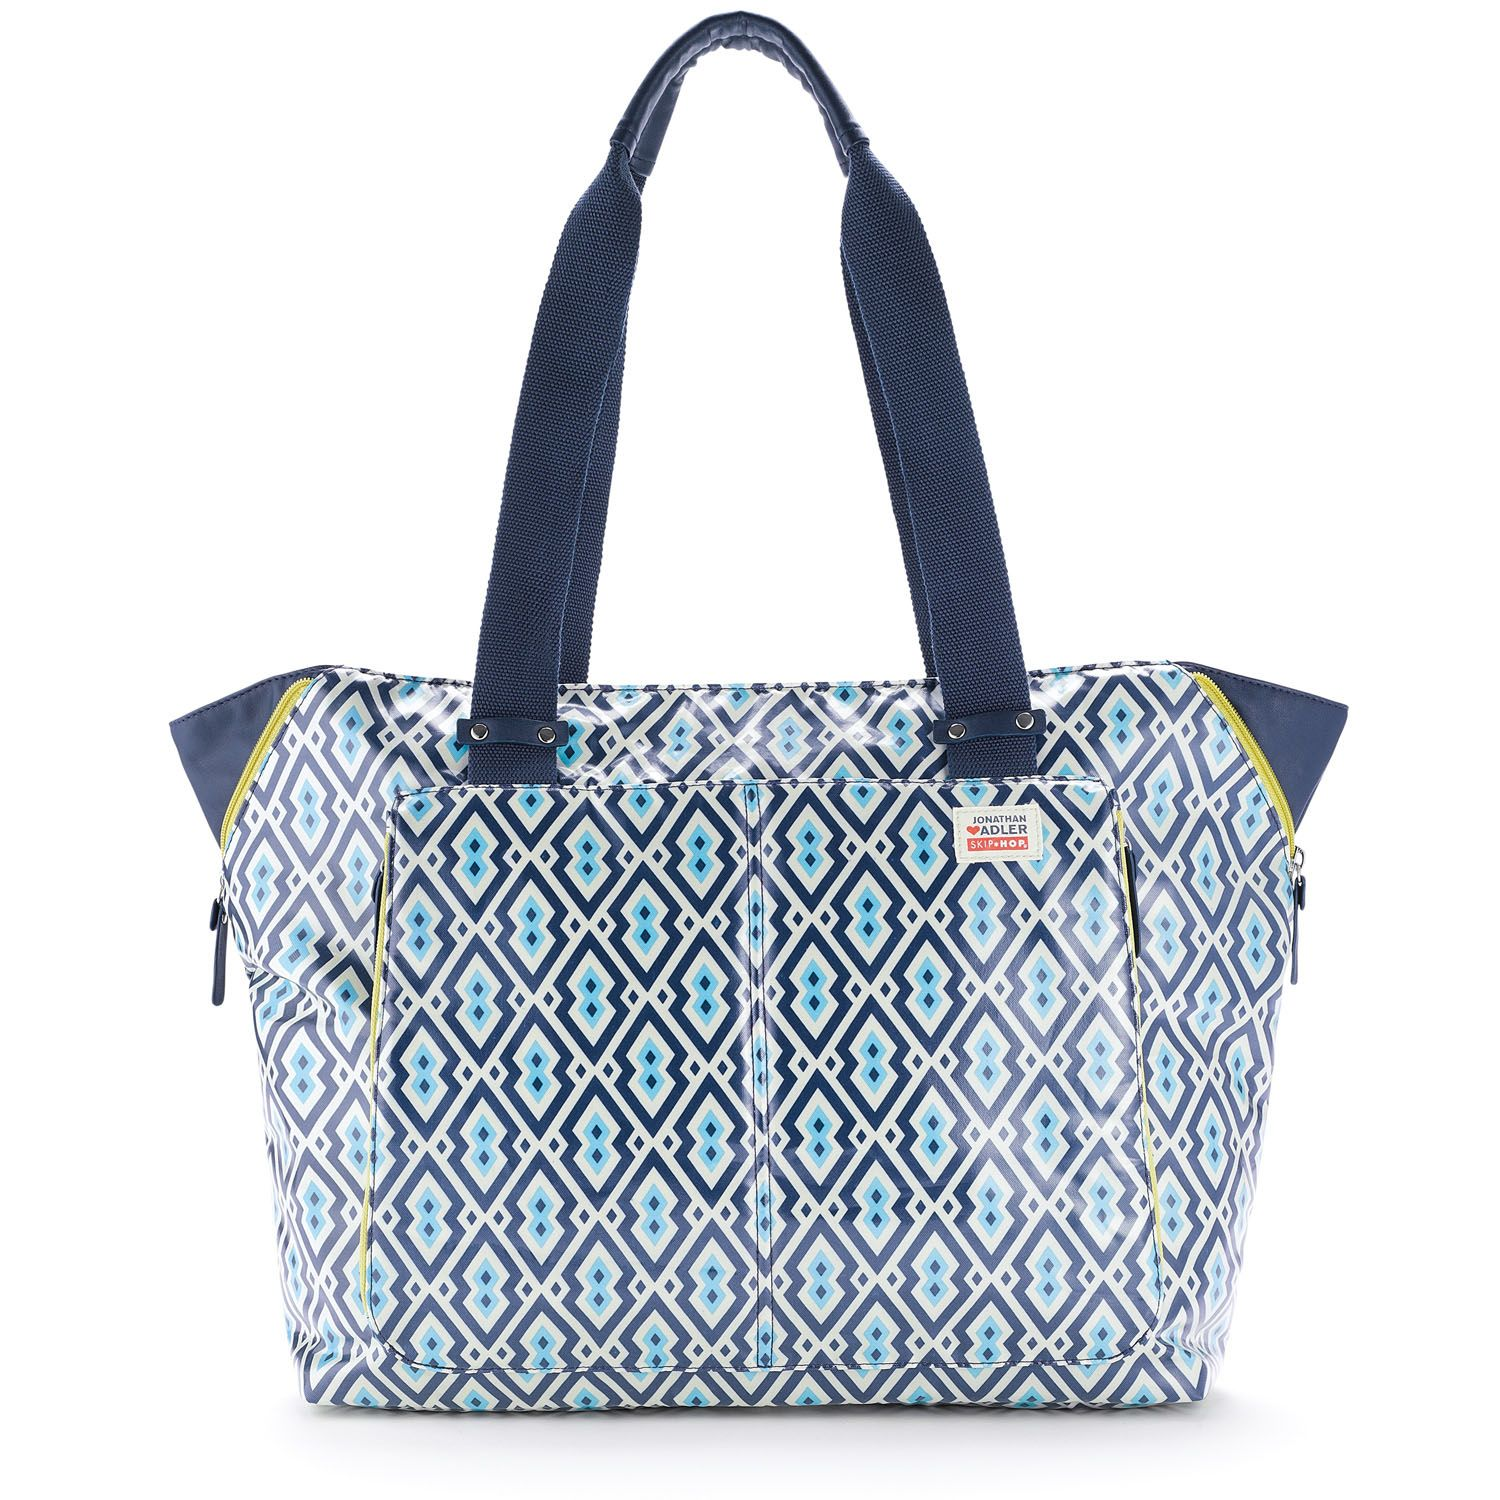 Skip Hop Jonathan Adler ♥ Skip Hop - I have owned more diaper bags than I can count, and this one is by far my favorite!